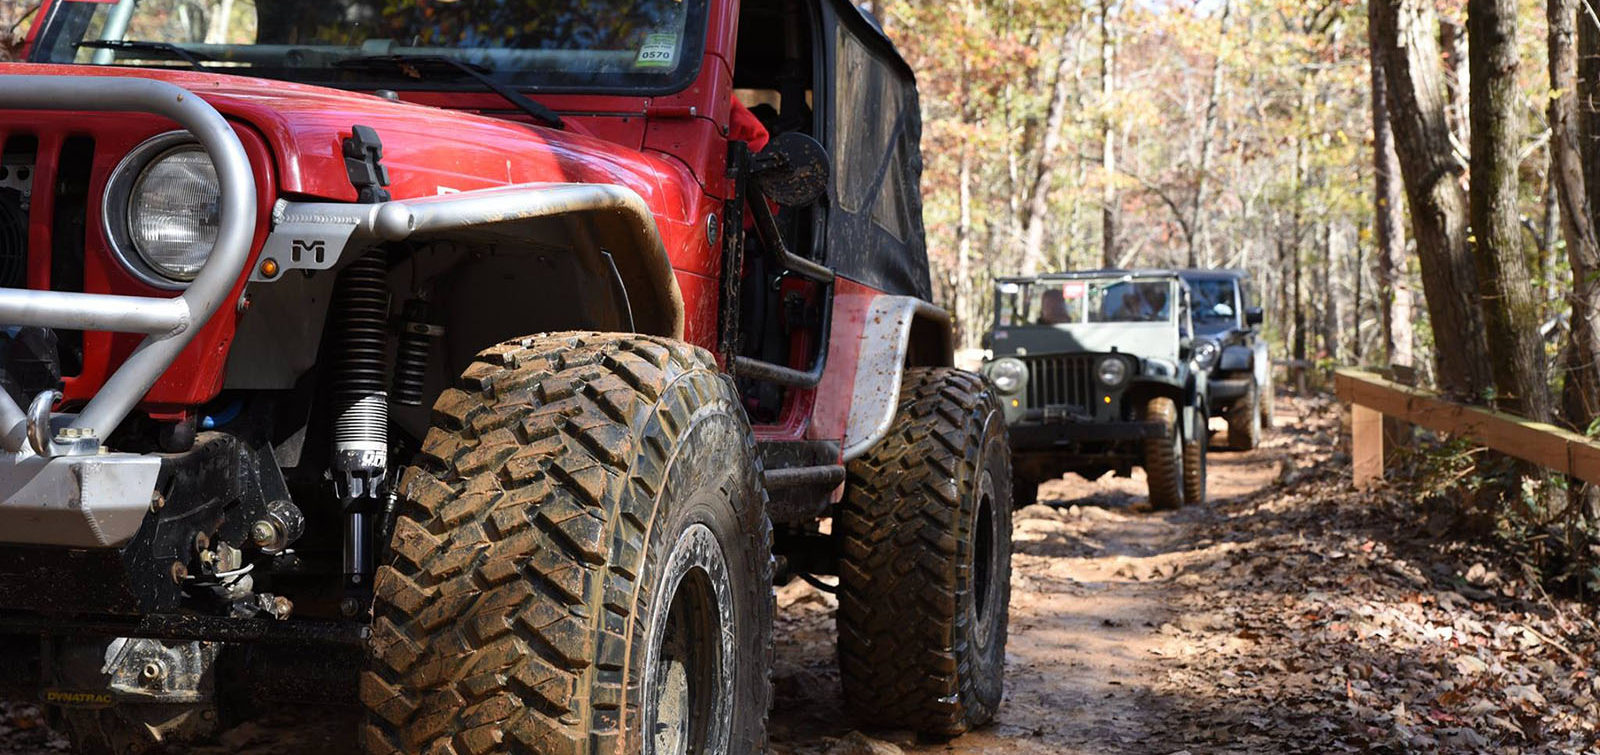 central NC 4x4 - OHV trail ride at Uwharrie National Forest